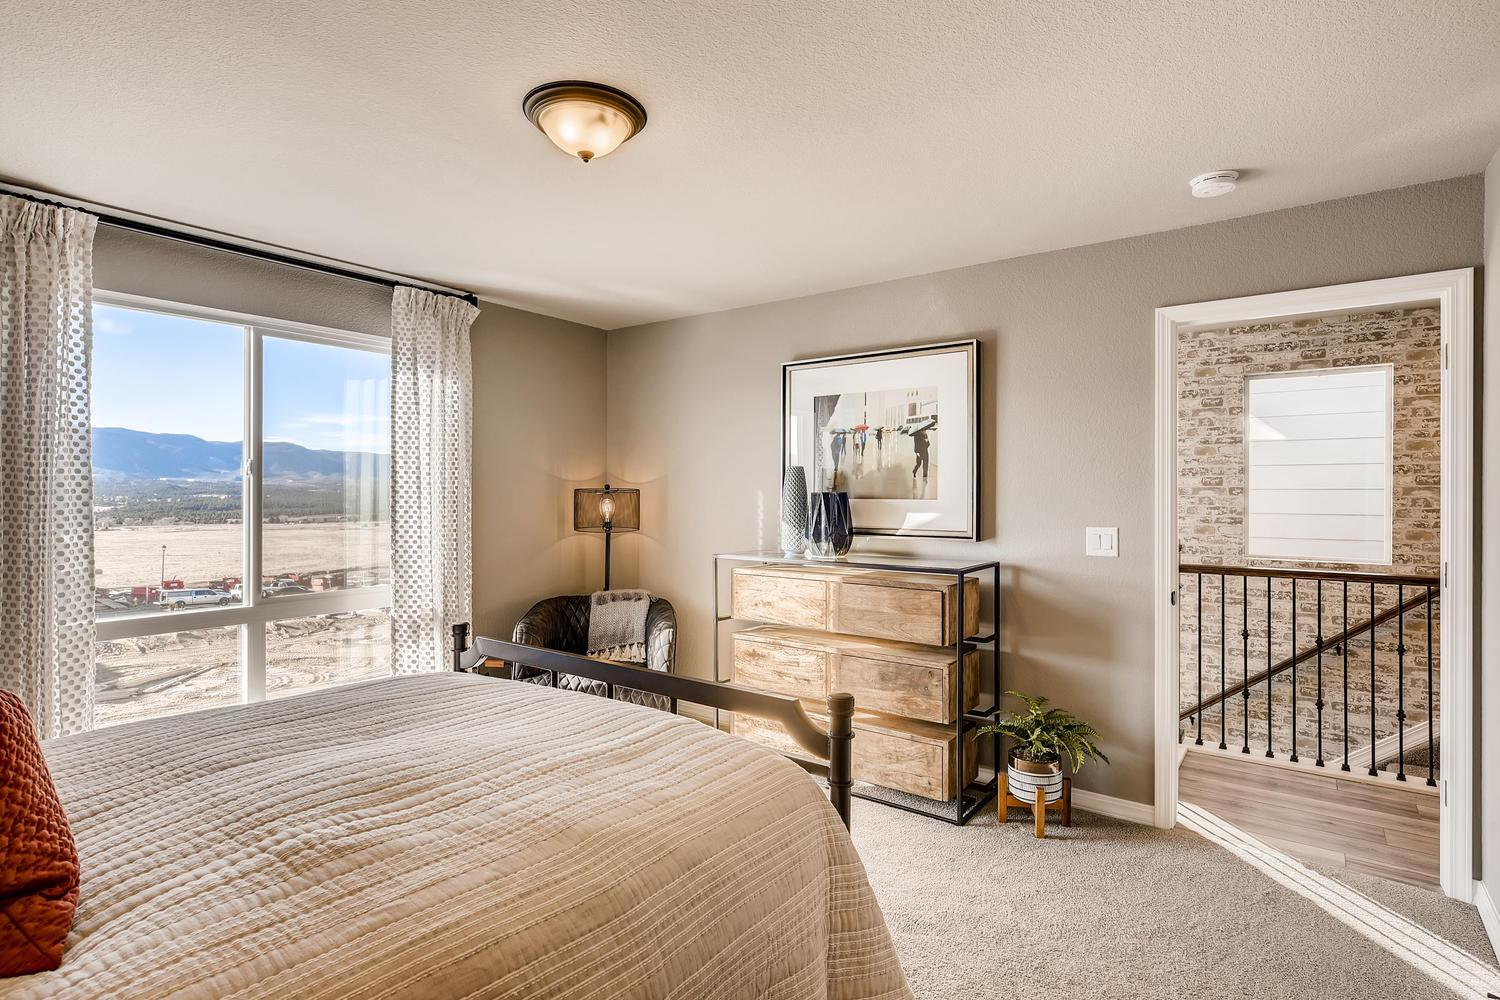 Bedroom featured in the 224 By Classic Homes in Colorado Springs, CO